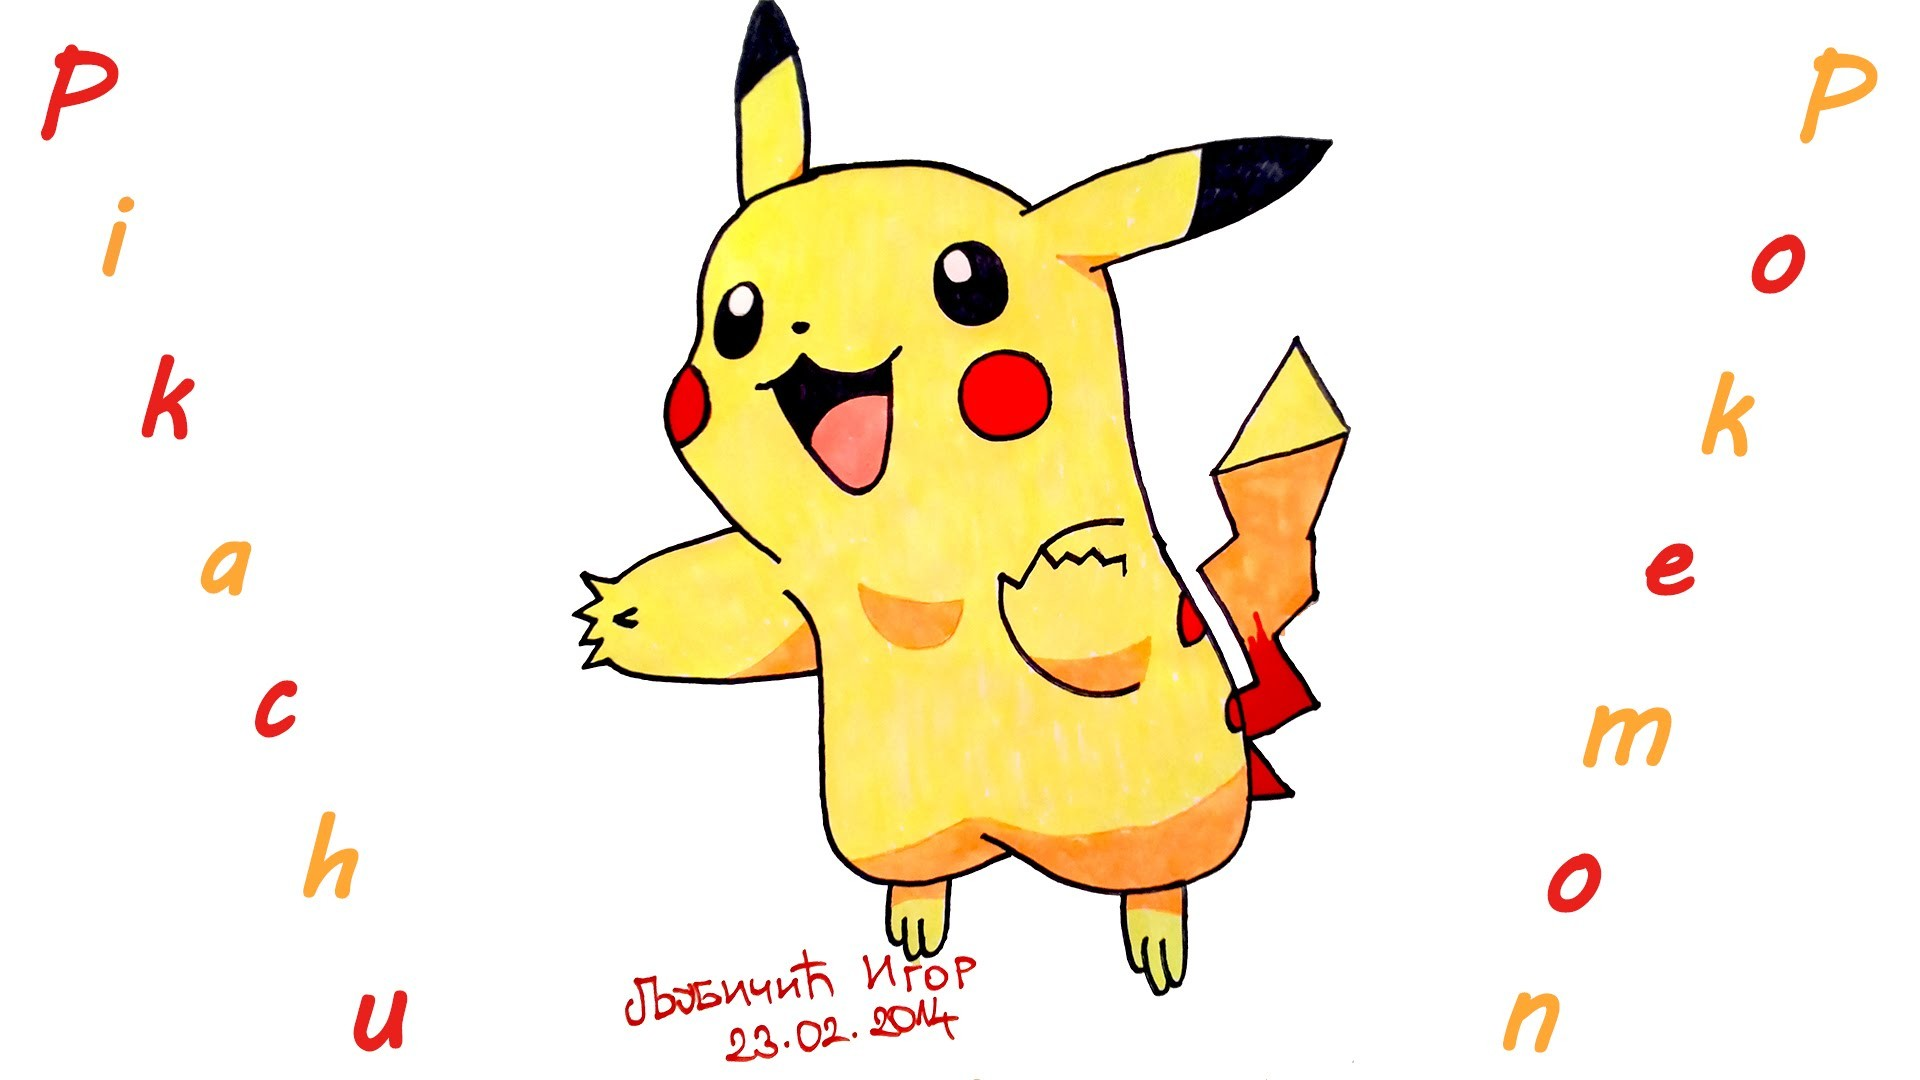 DIY How To Draw Pokemon Characters EasyPIKACHU